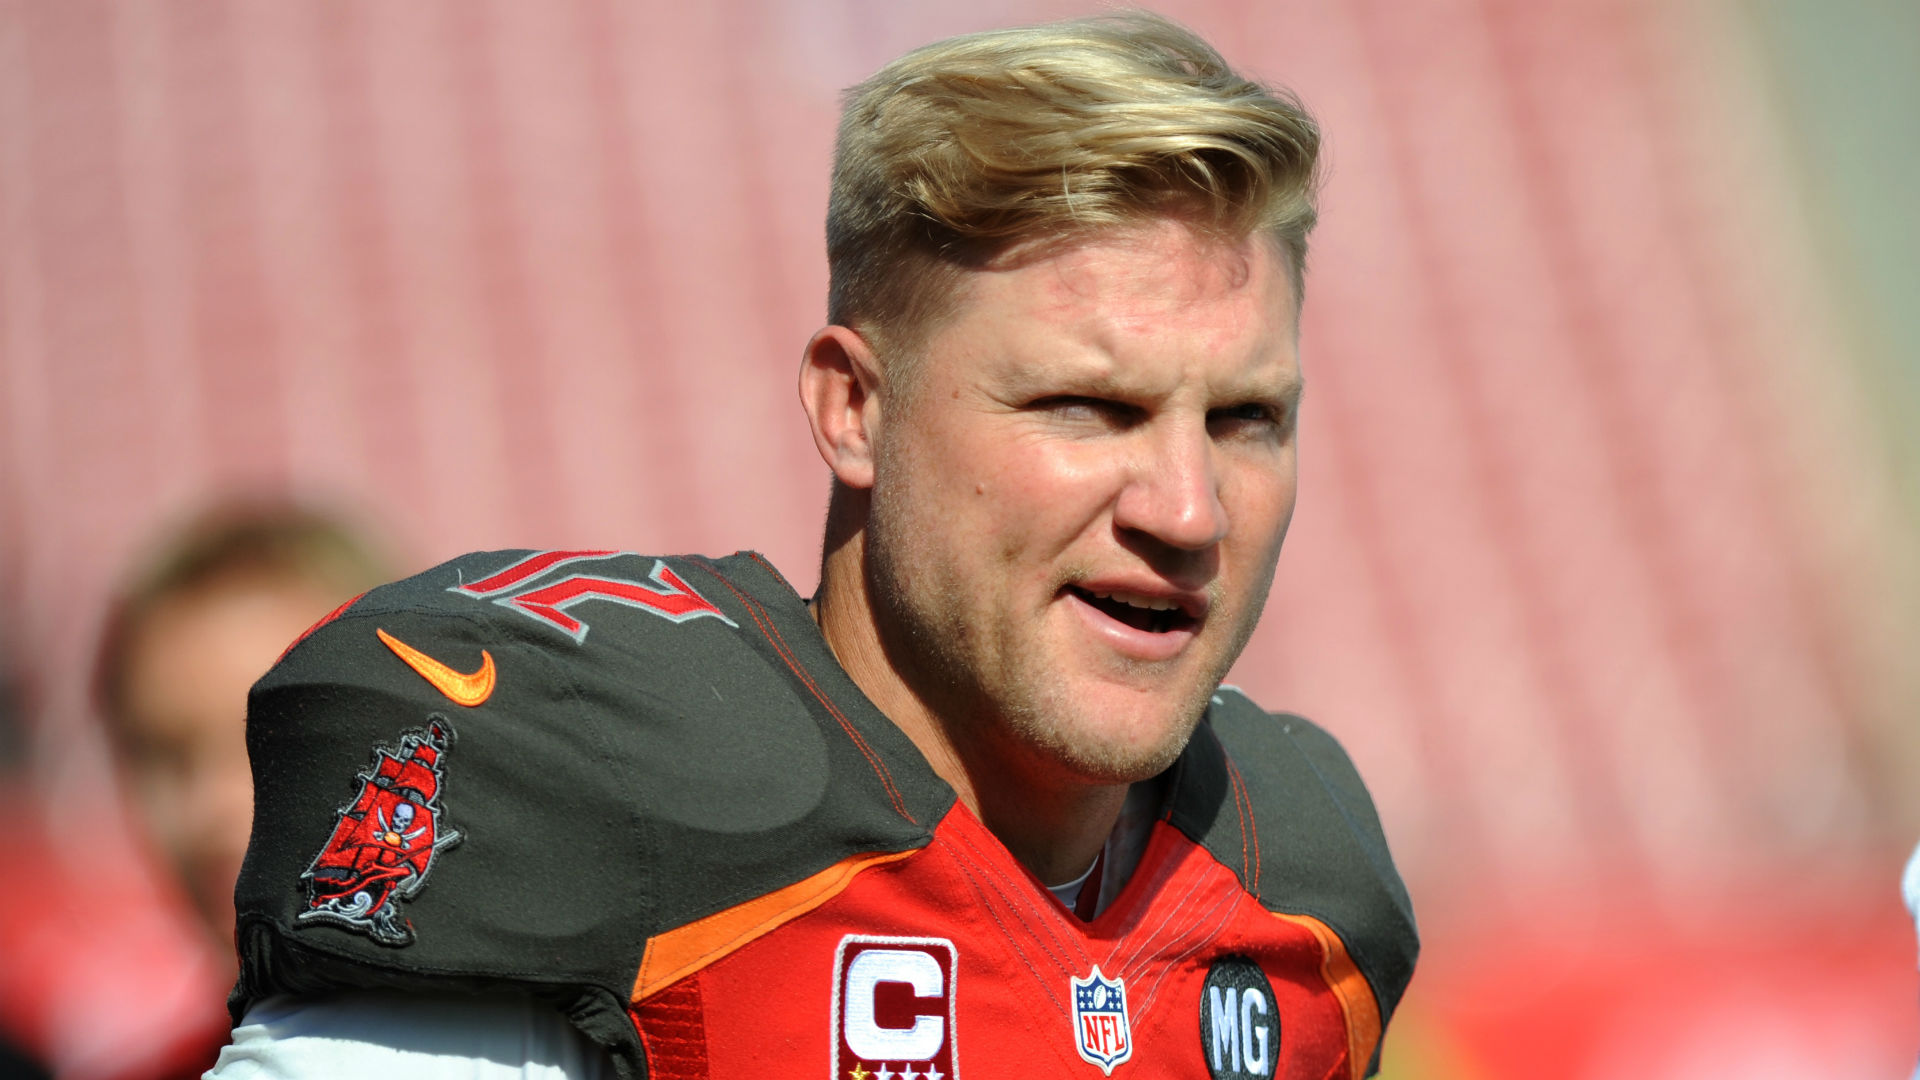 Browns' Dwayne Bowe: Josh McCown can be top 5 QB in NFL